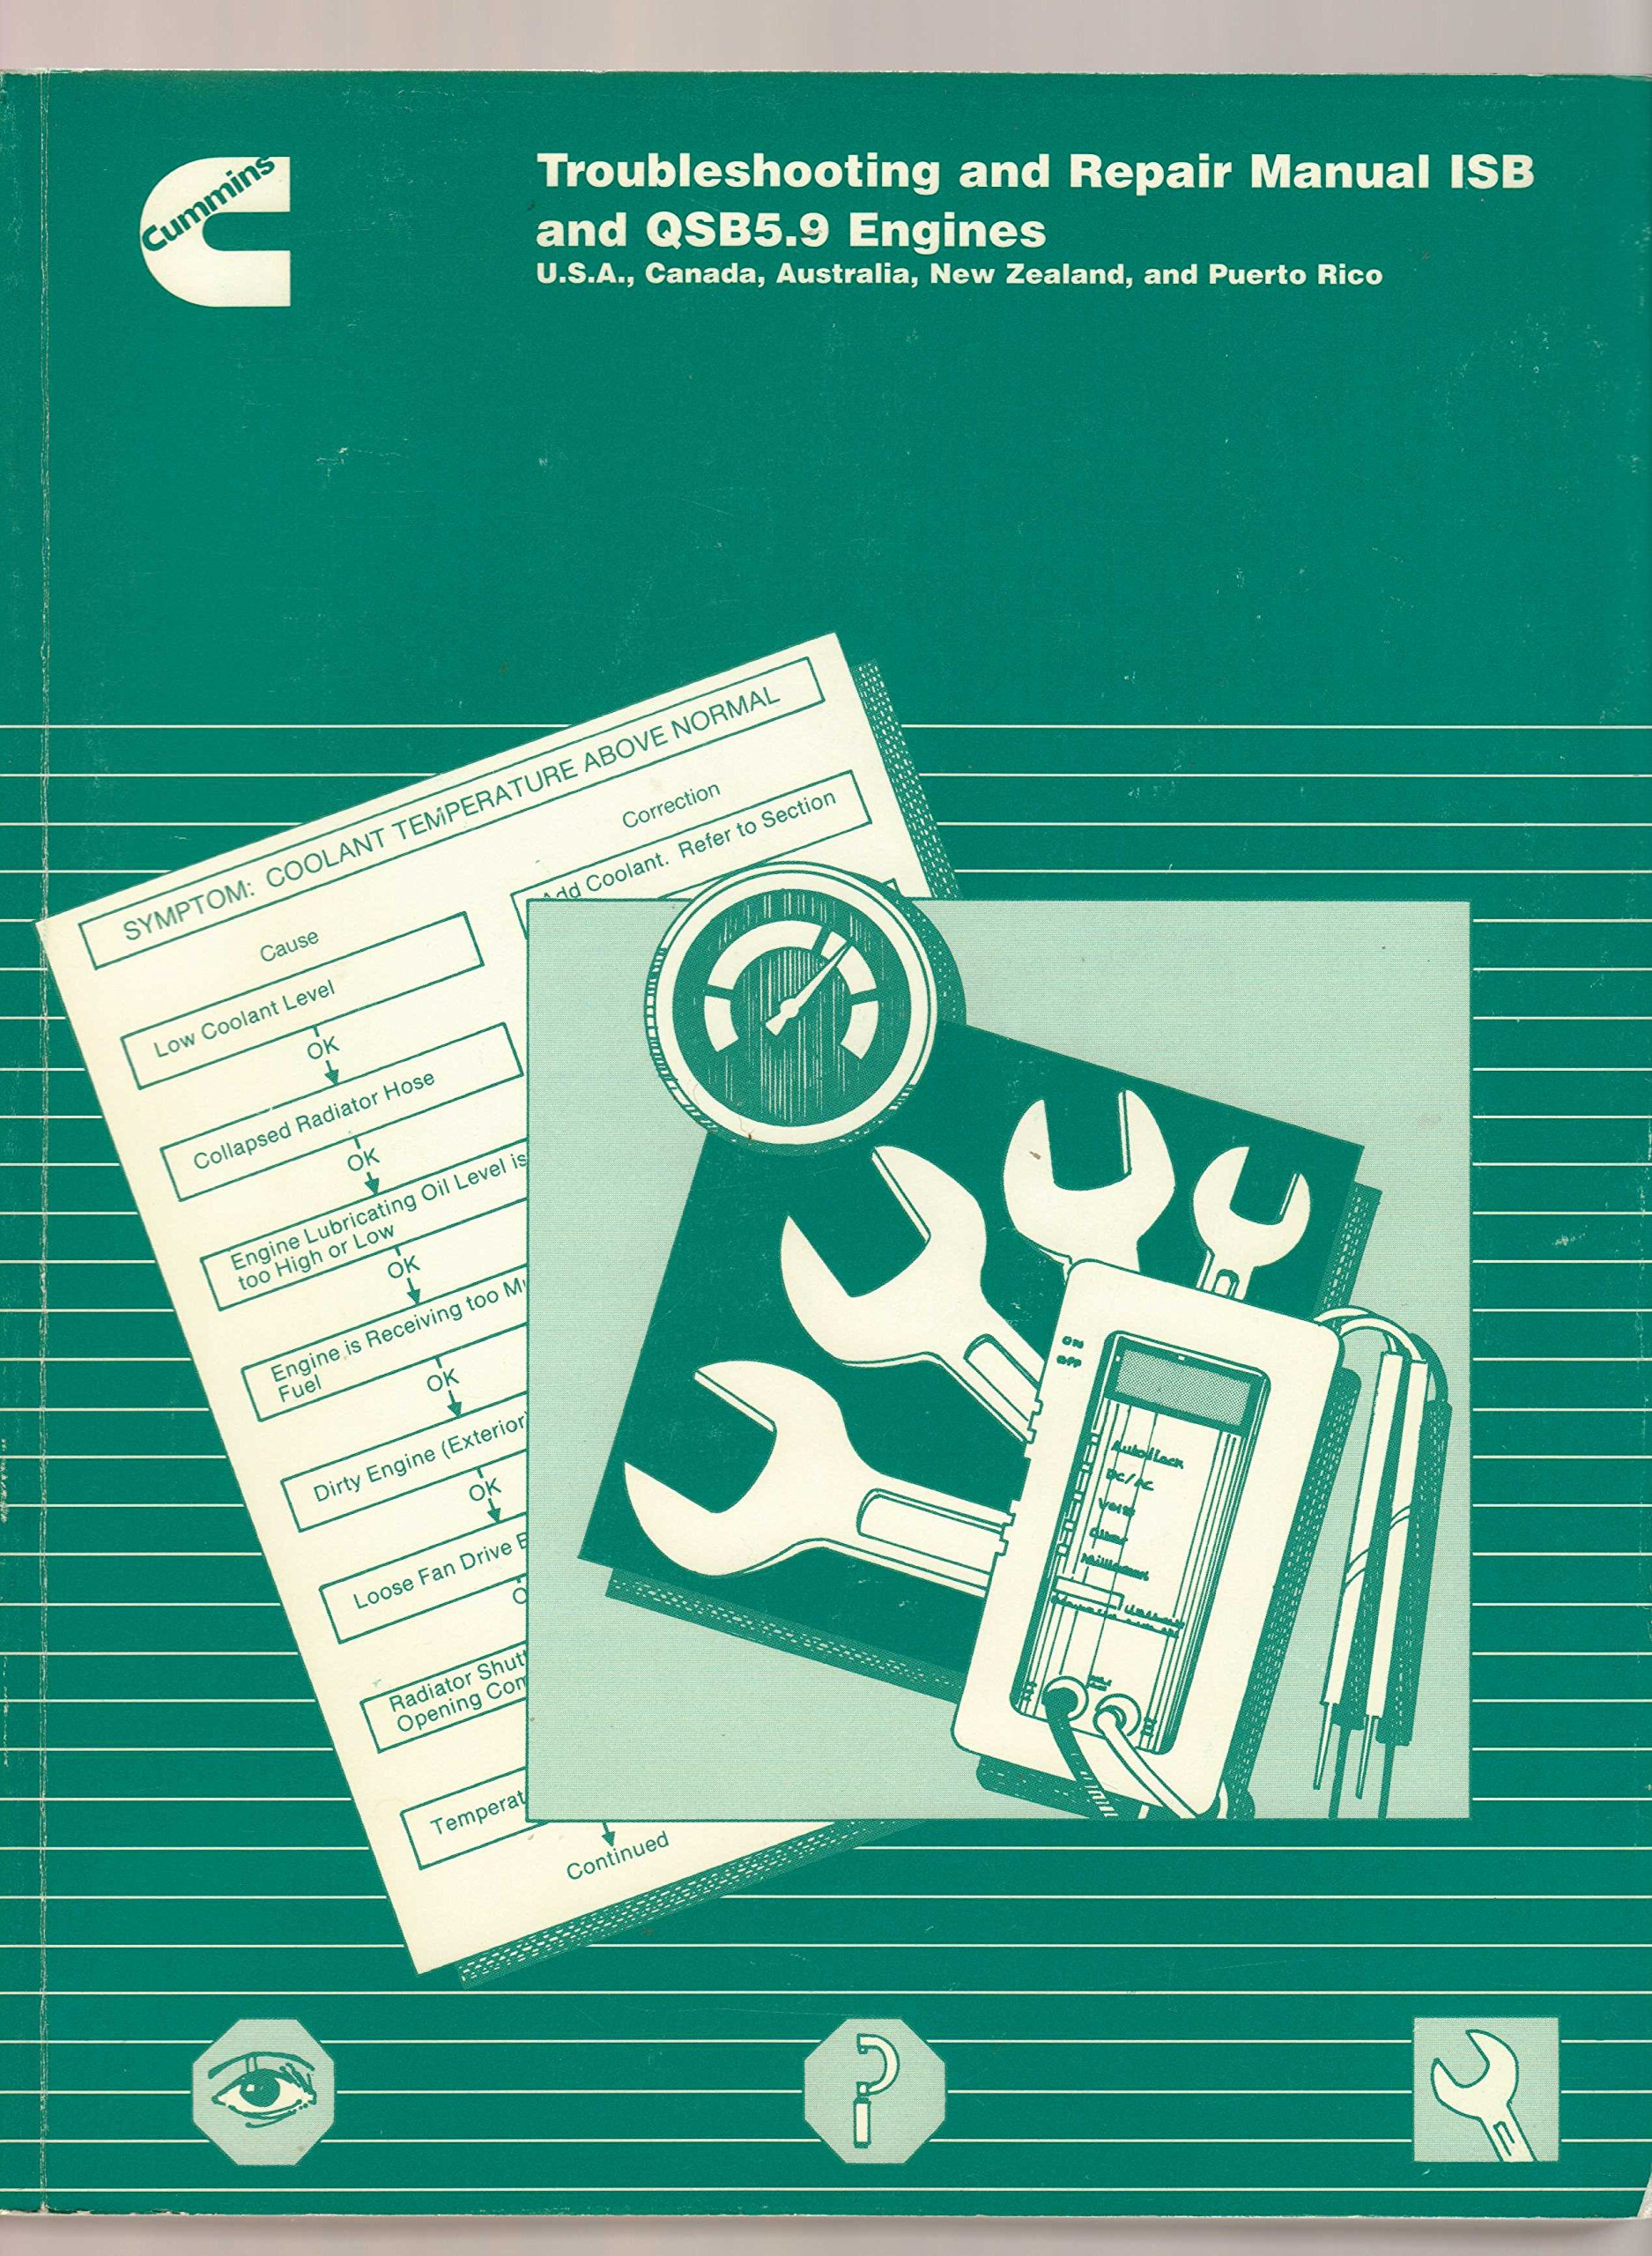 CUMMINS TROUBLESHOOTING AND REPAIR MANUAL ISB AND QSB5.9 ENGINES  (3666193-01): Cummins Engine Company: Amazon.com: Books